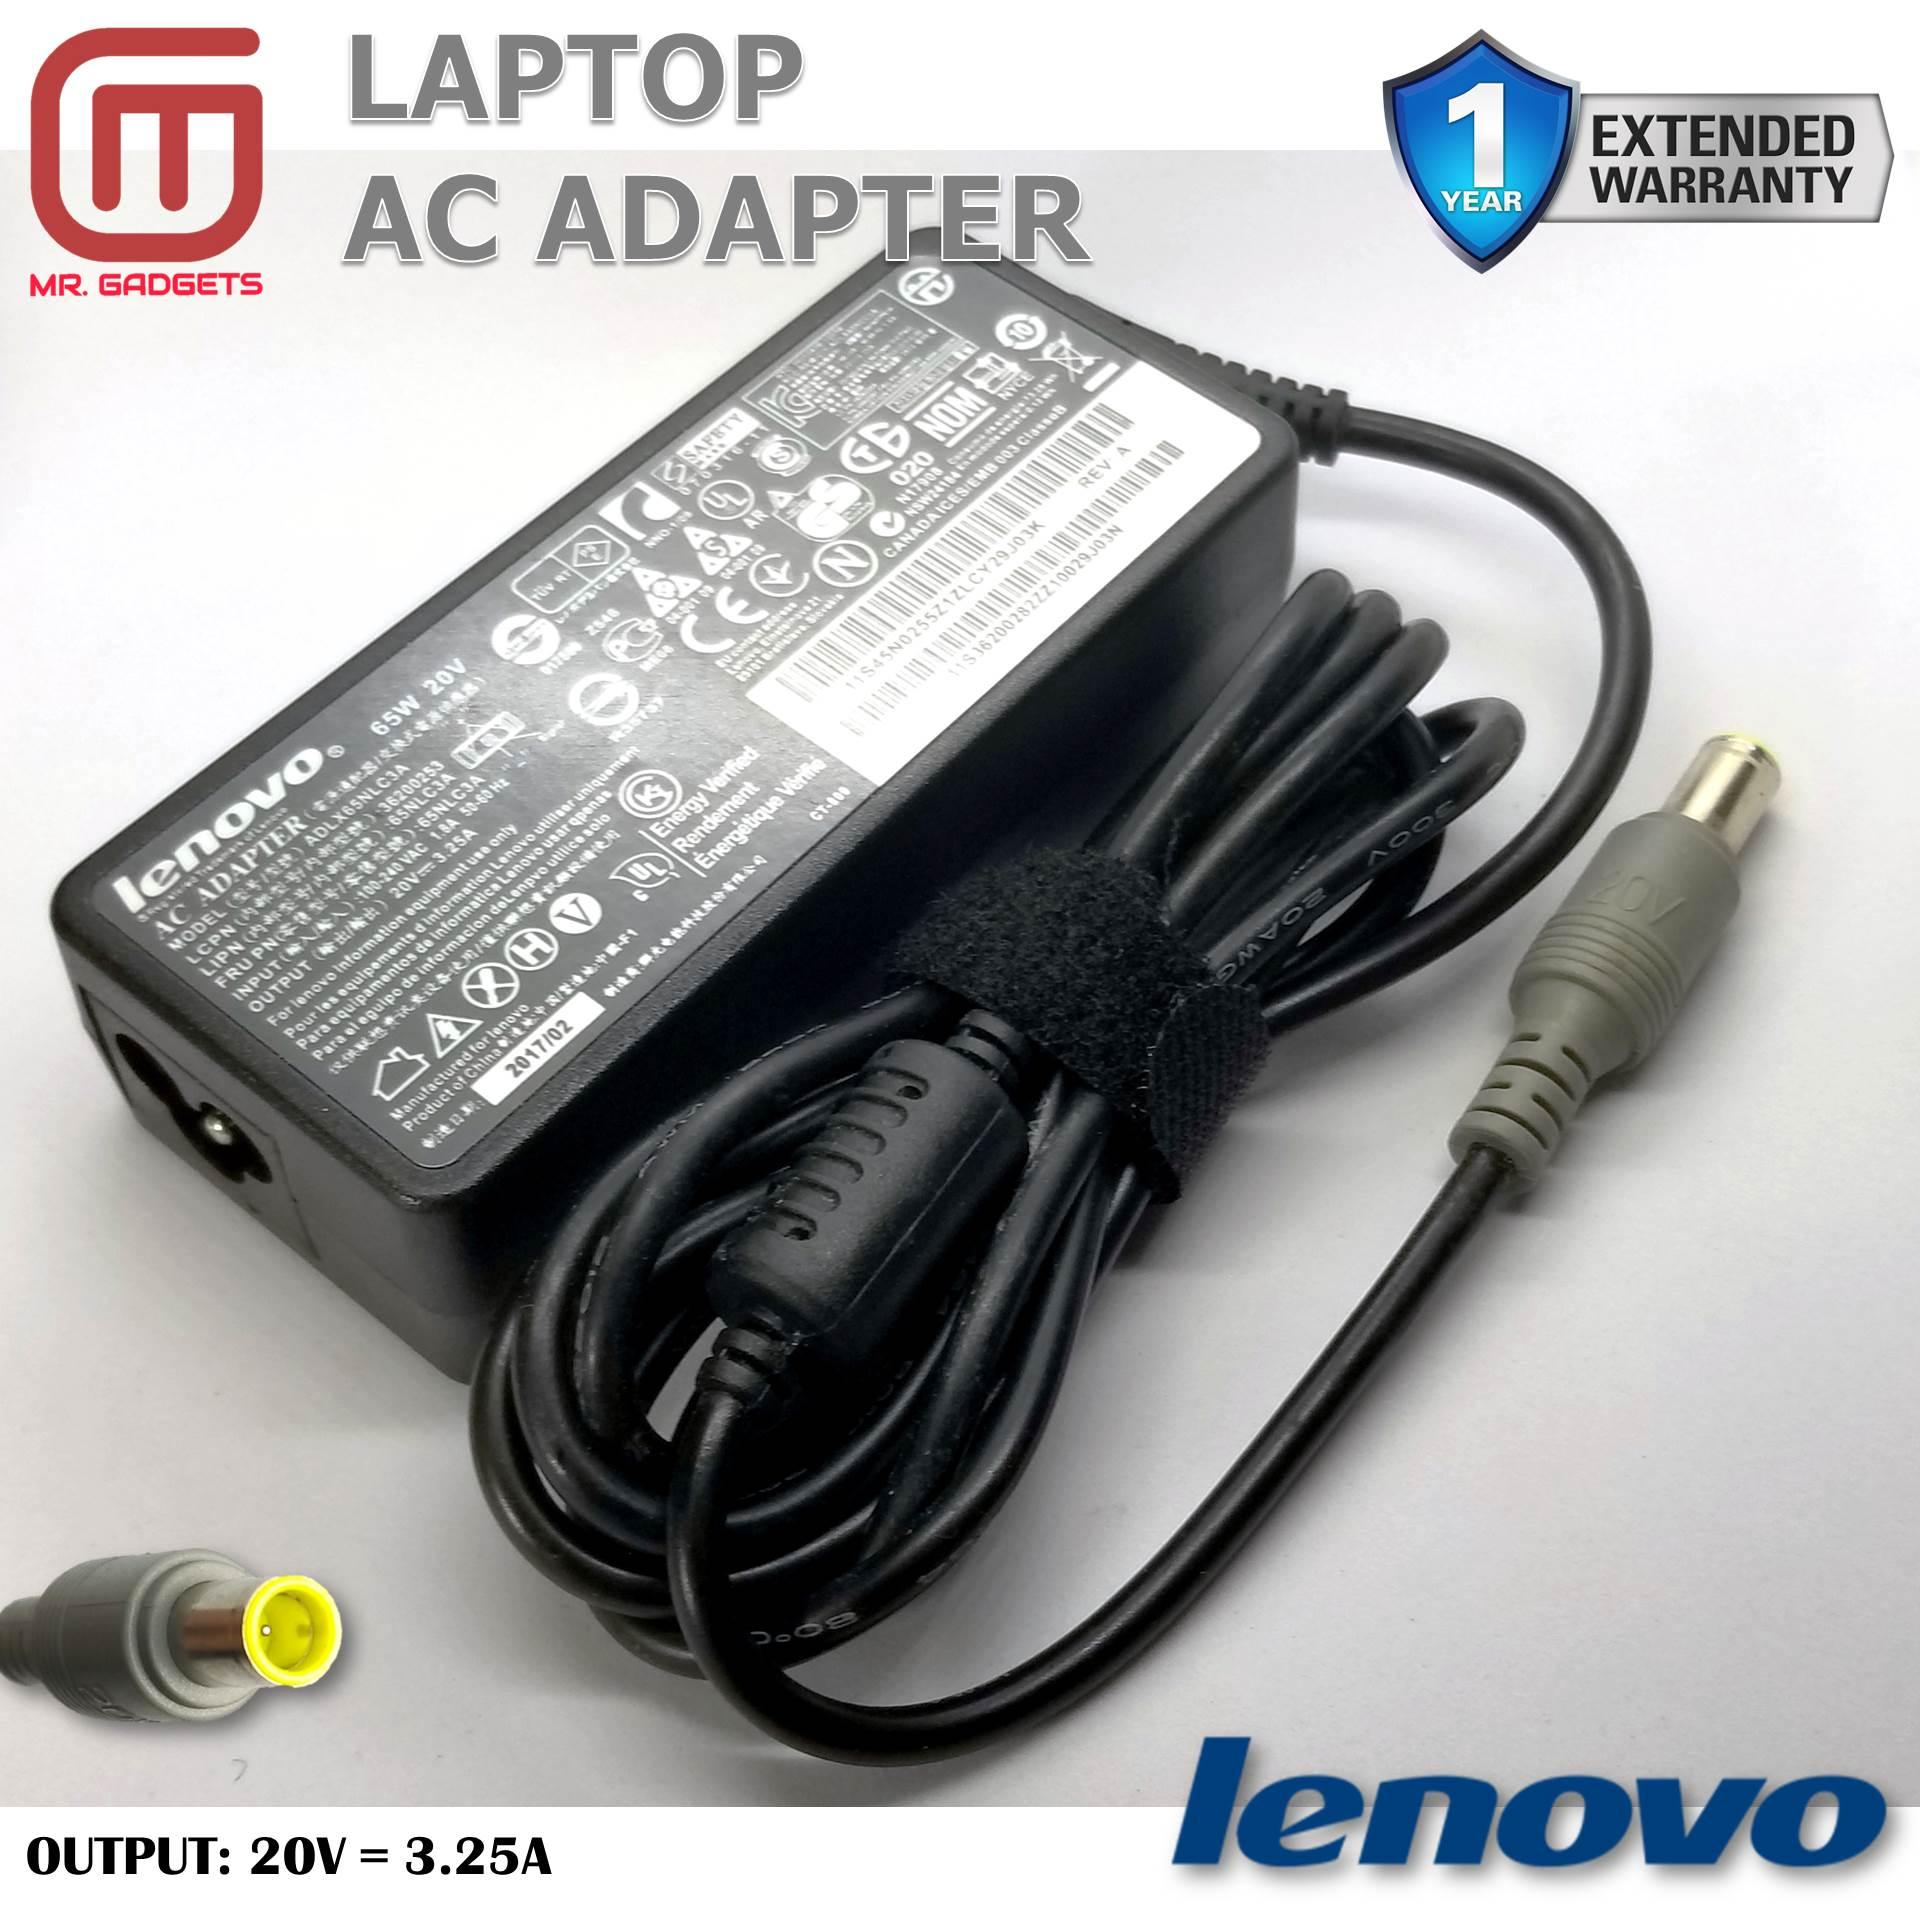 Laptop Ac Charger Power Adapter For Lenovo T60 T61 T60p Z60 T400s T400 T500 X200 X200s 20v 3.25a 65w Free Shipping Laptop Accessories